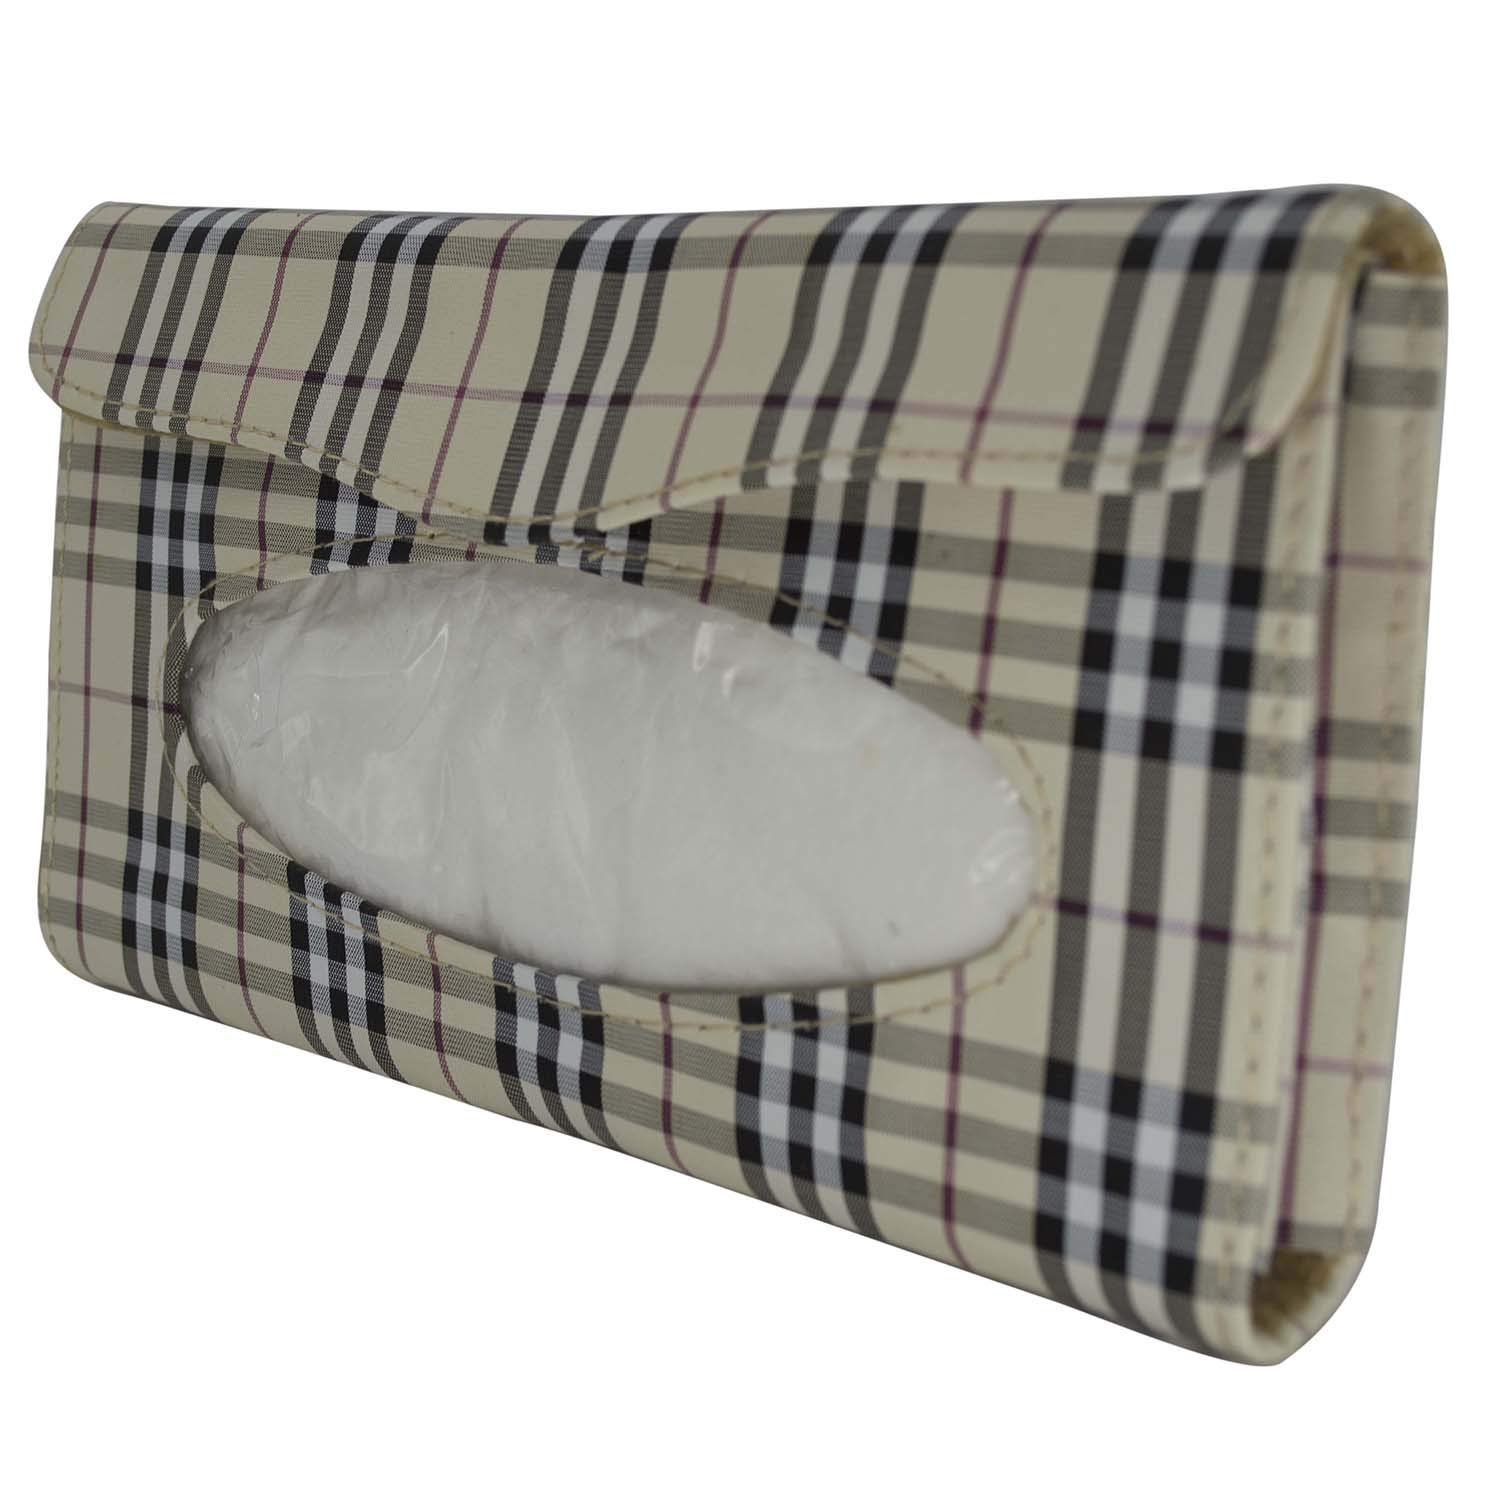 SAPPSEN Auto Accessories Plaid Paper Napkin Holder Box Tissue Case Cover for Car Sun Visor Can Be Fixed in The Car Sun Visor Car Backseat and The Door of The Car